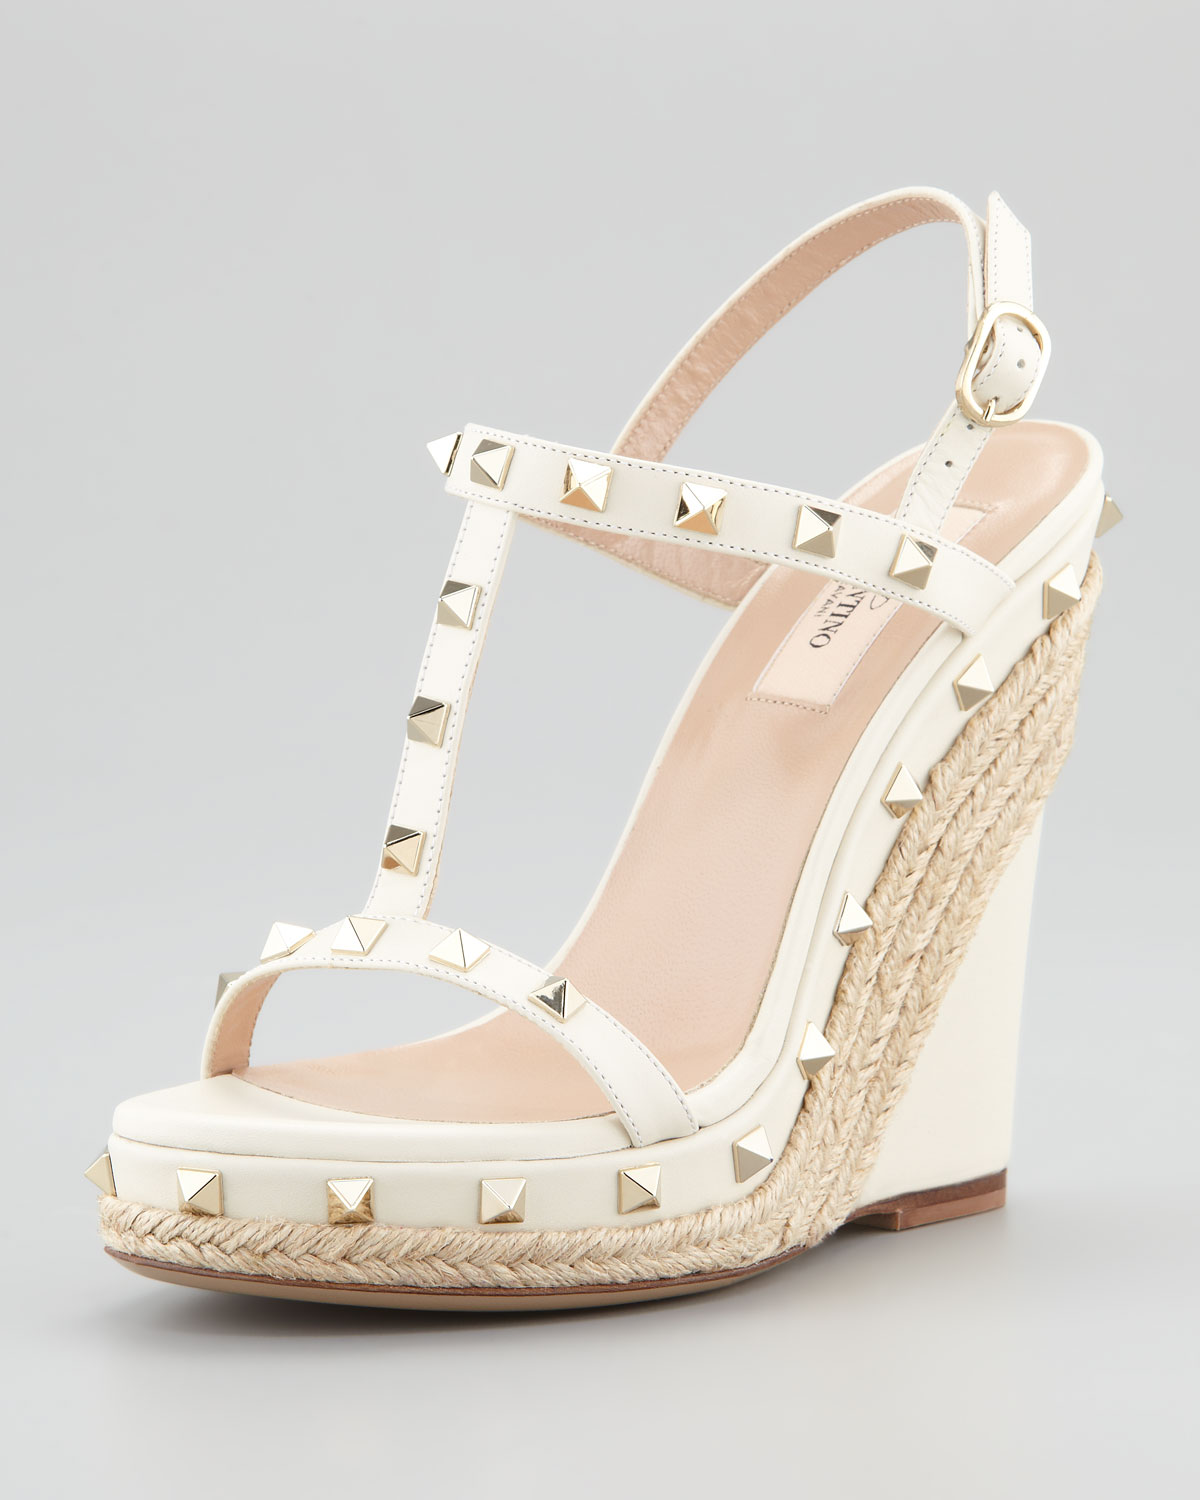 clearance Valentino Quilted Platform Wedges shopping online cheap price latest collections sale online low price fee shipping sale online cheap 2015 LV9j2